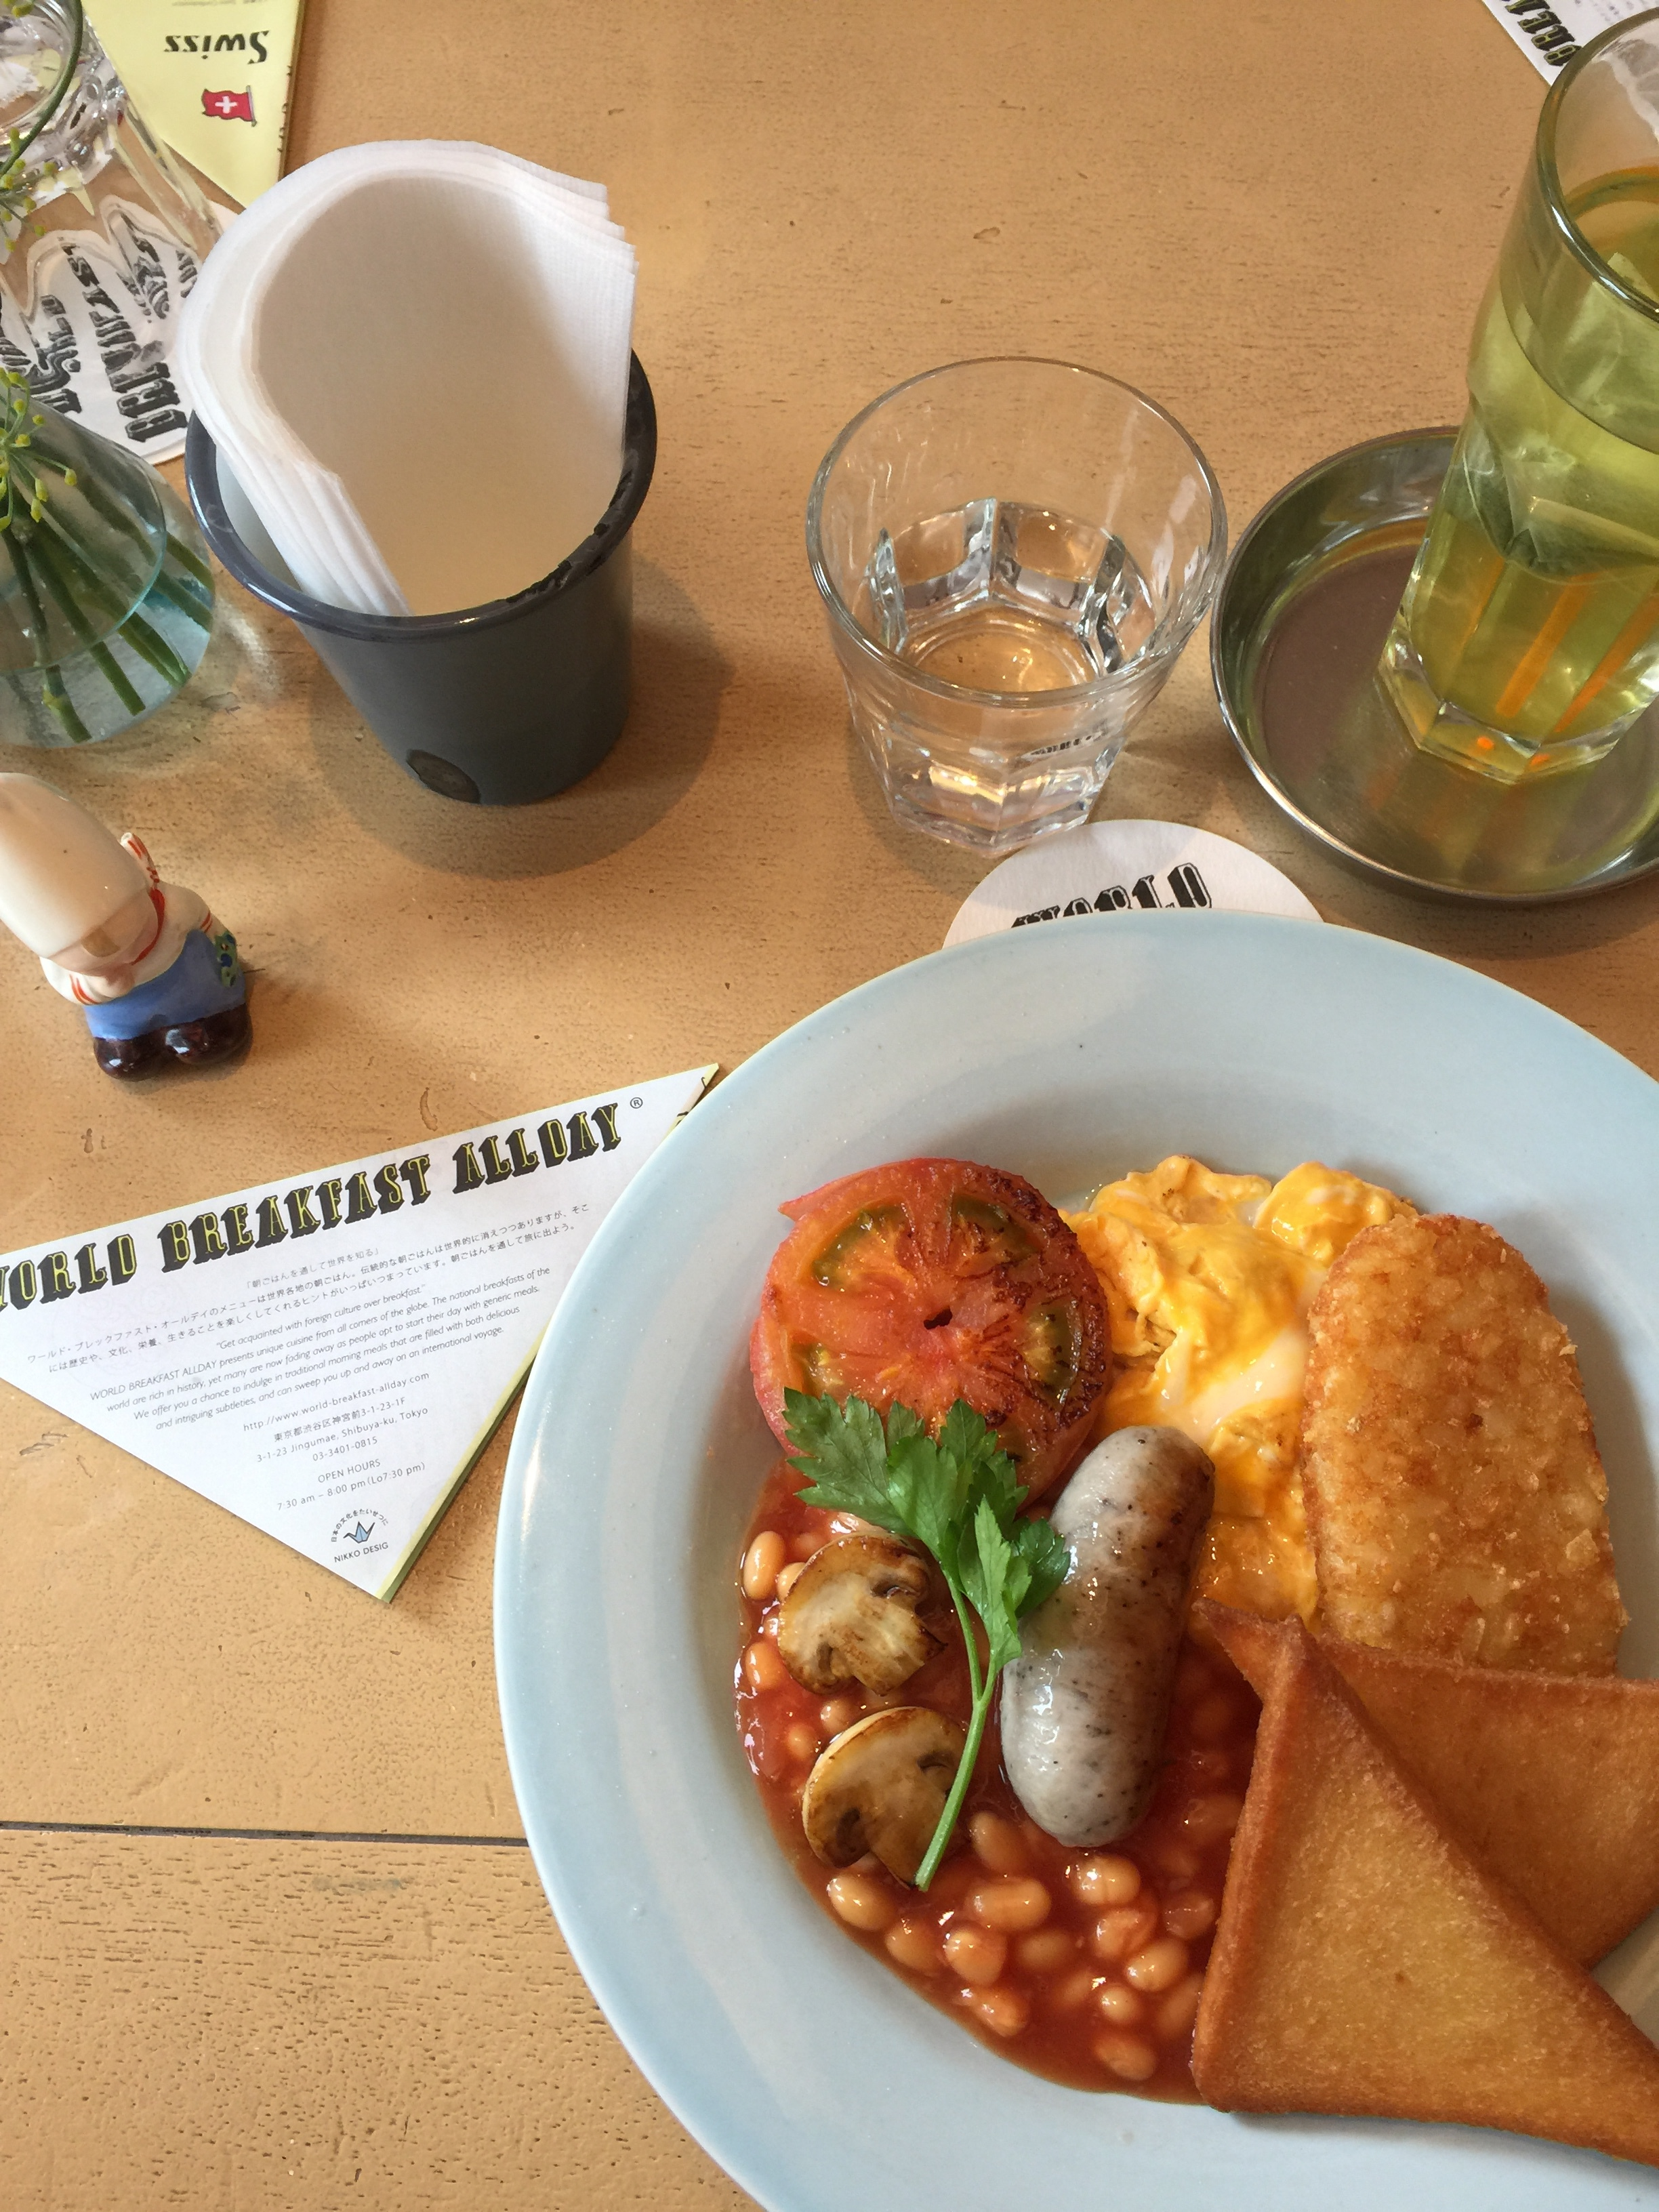 Full English Breakfast - Eggs, Baked Beans, Fried Bread, Sausages, Tomatoes and Hash Brown